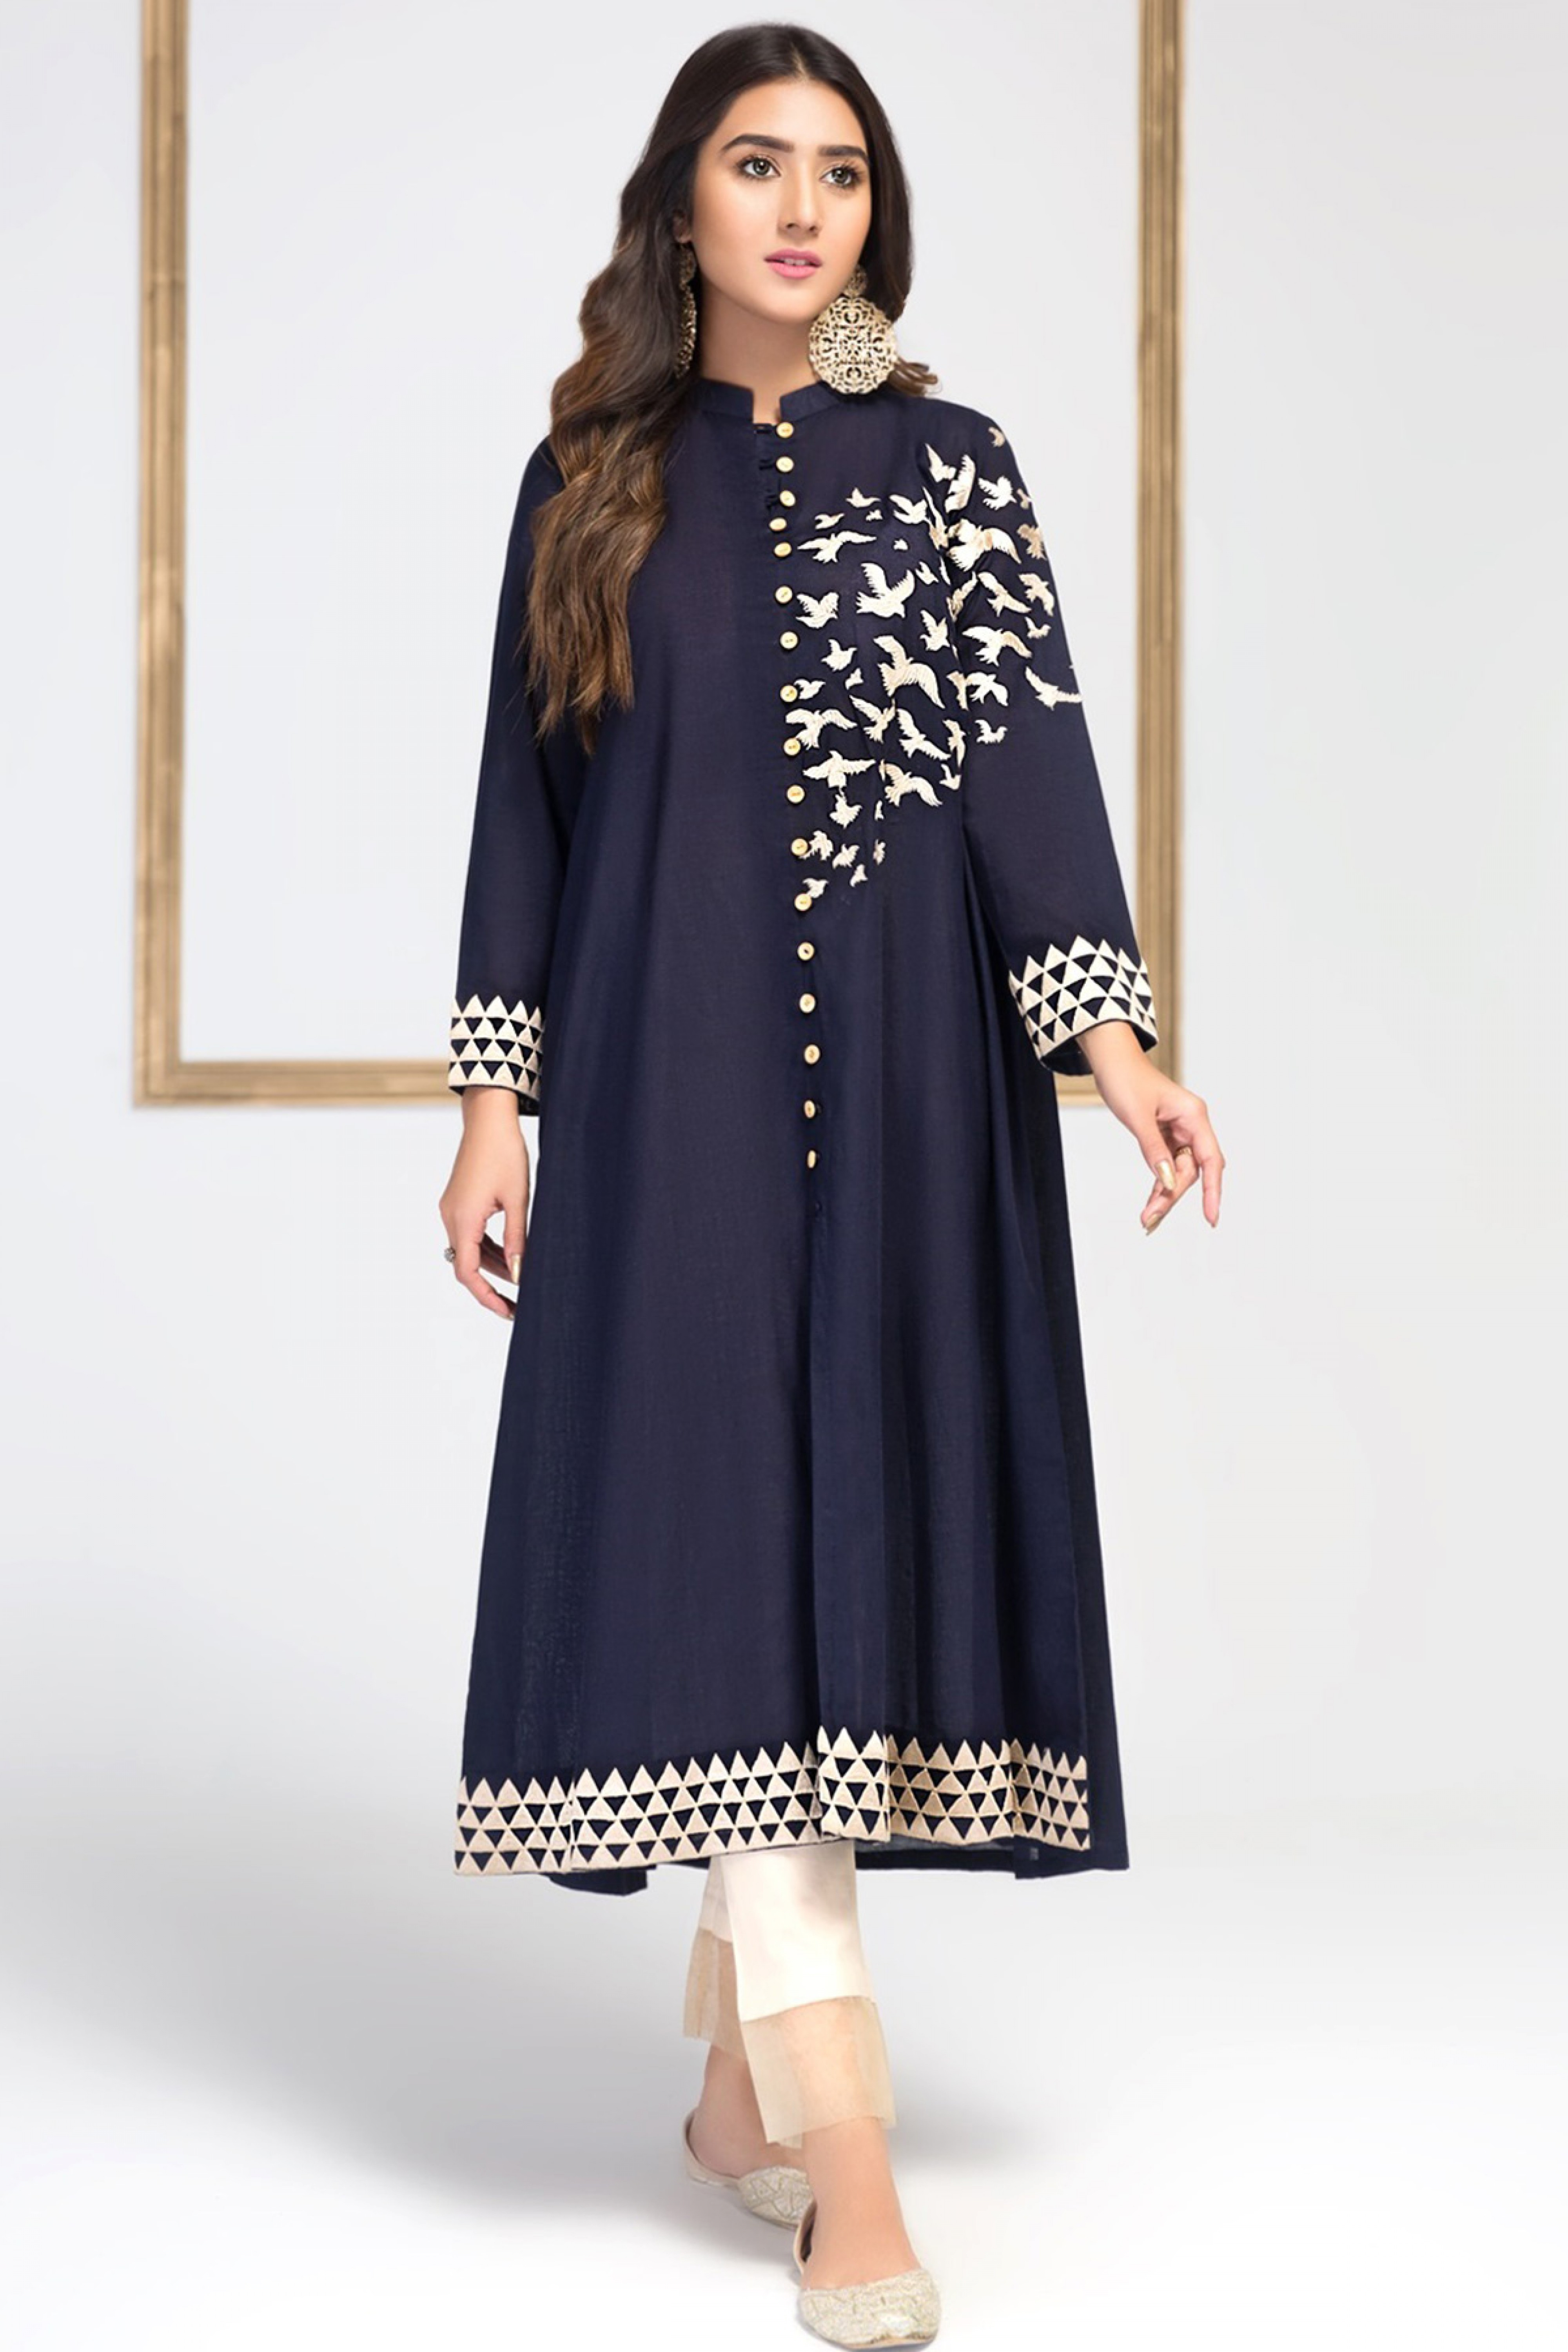 OPAL(Embroidered Frock)